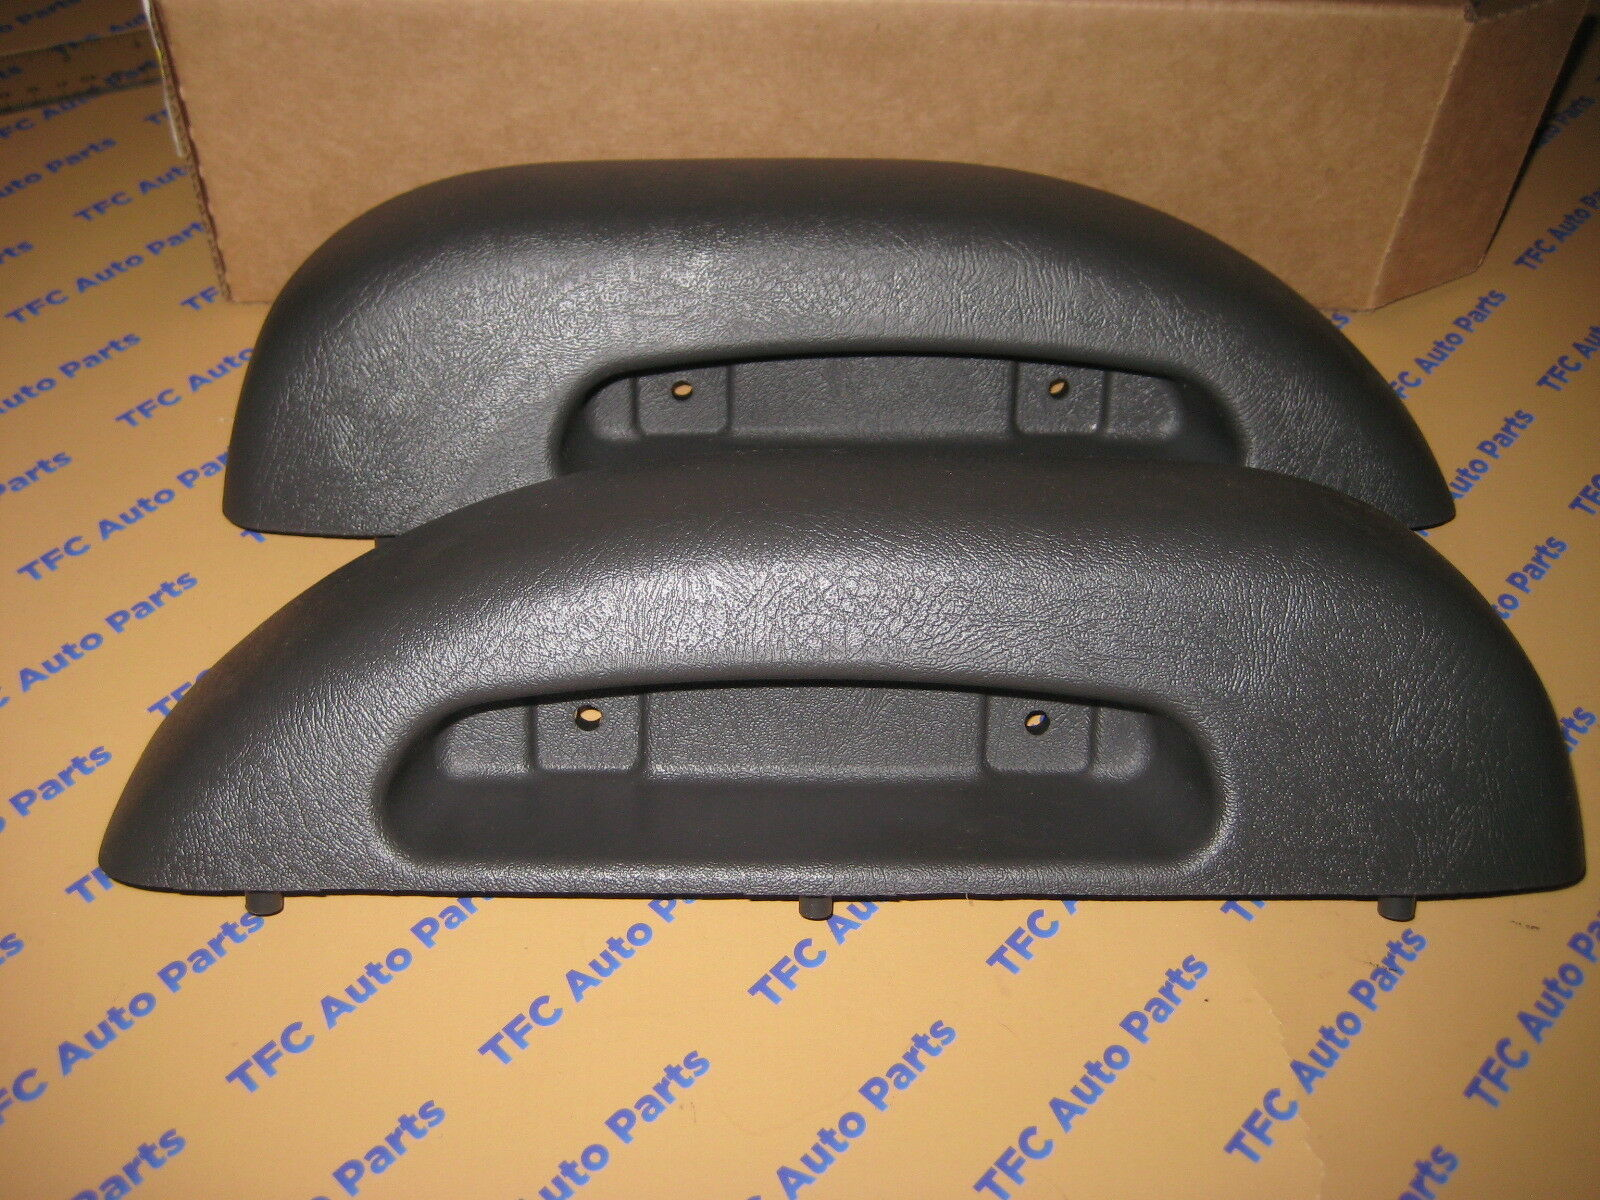 Chevy Gmc Topkick Kodiak C4500 C5500 C6500 C7500 Left And Right 6500 Mitula Cars 1 Of 1free Shipping